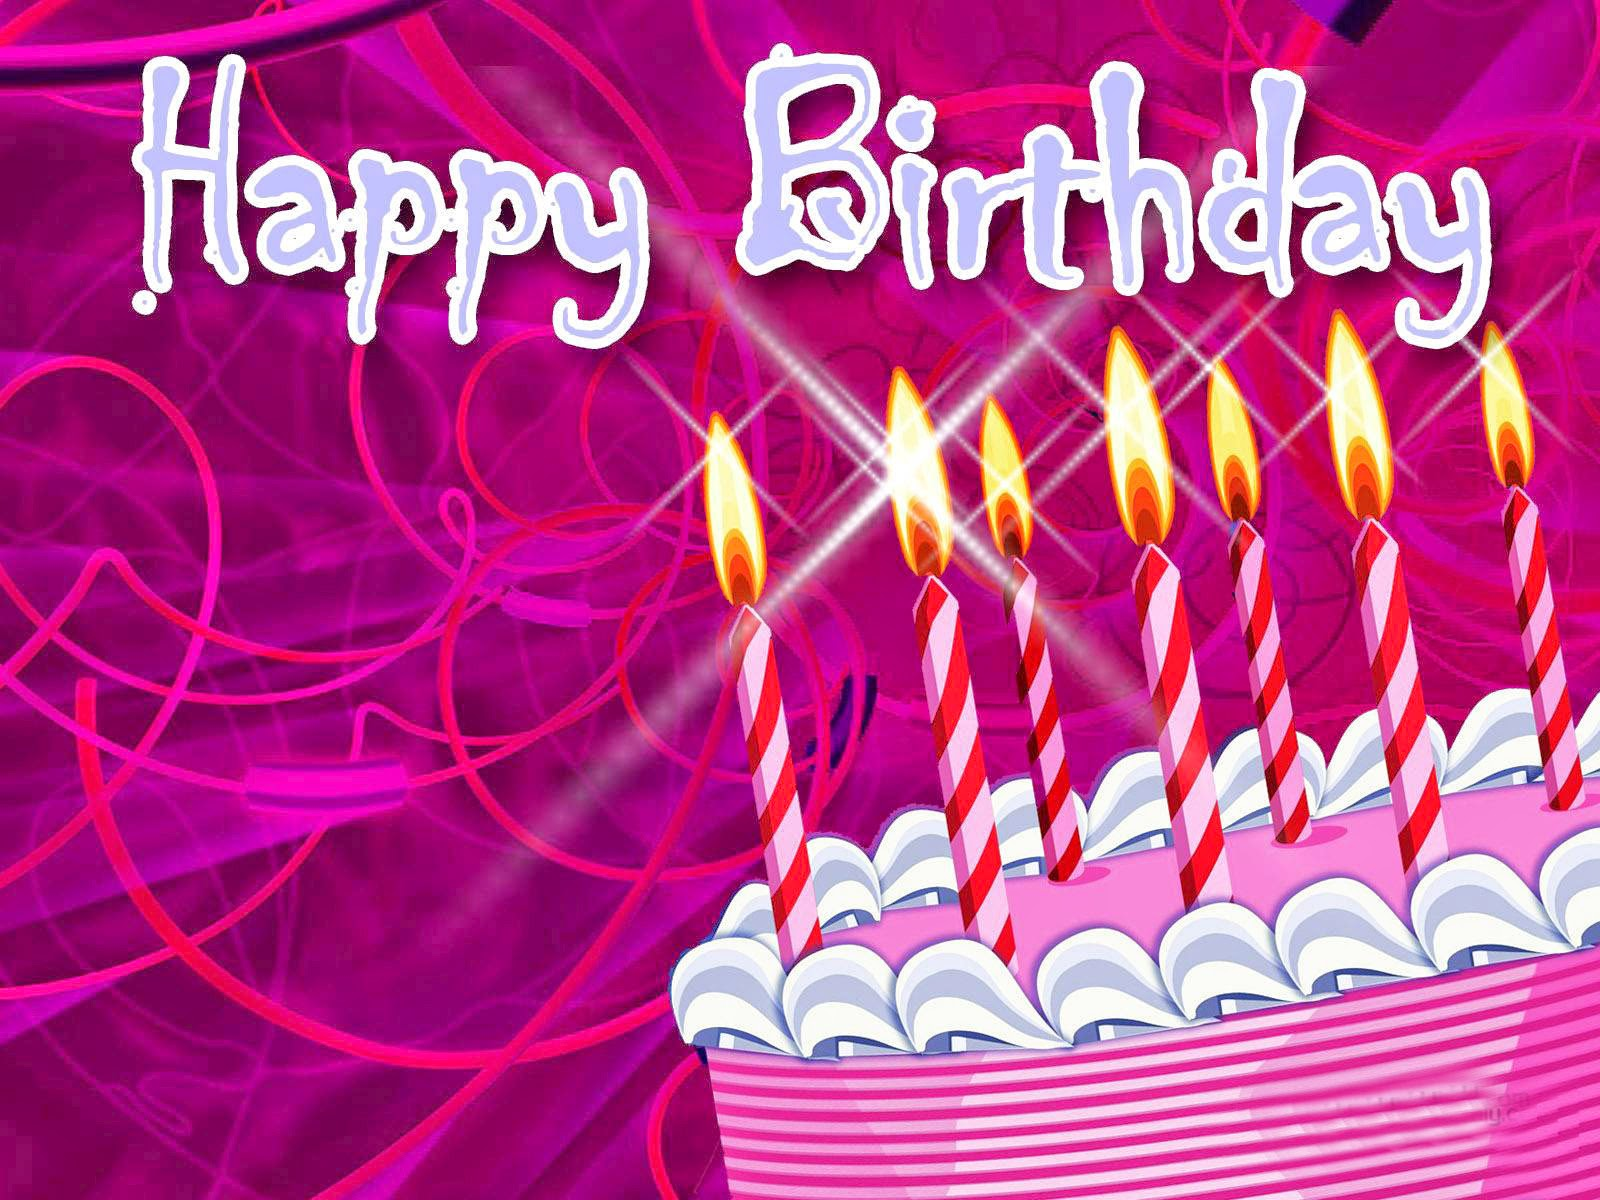 live wallpaper birthday wishes ; Happy-Birthday-Images-Pics-And-Wallpapers-3